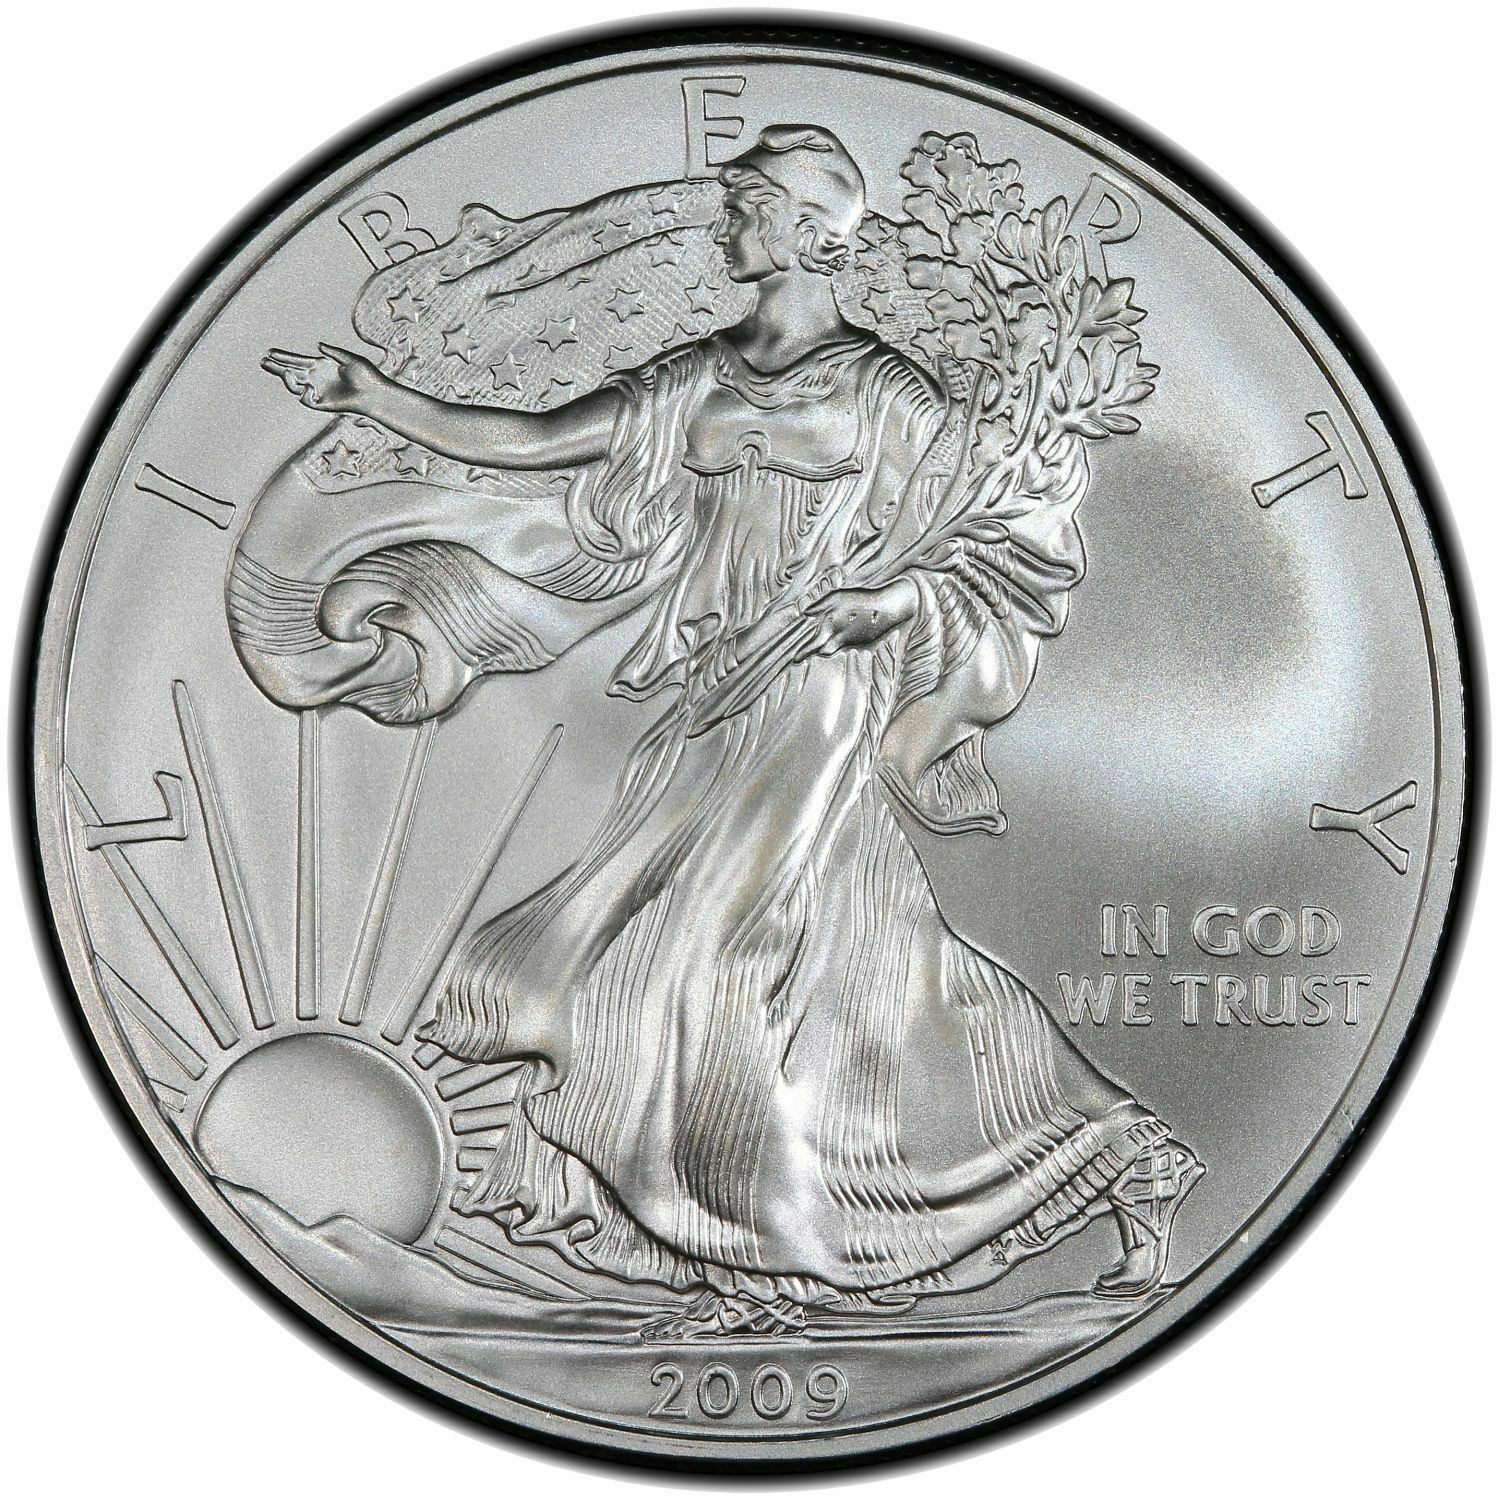 2009 US Mint Silver Eagle 1 Coin From Original Mint Roll 1 Oz .999 Fine - $37.00